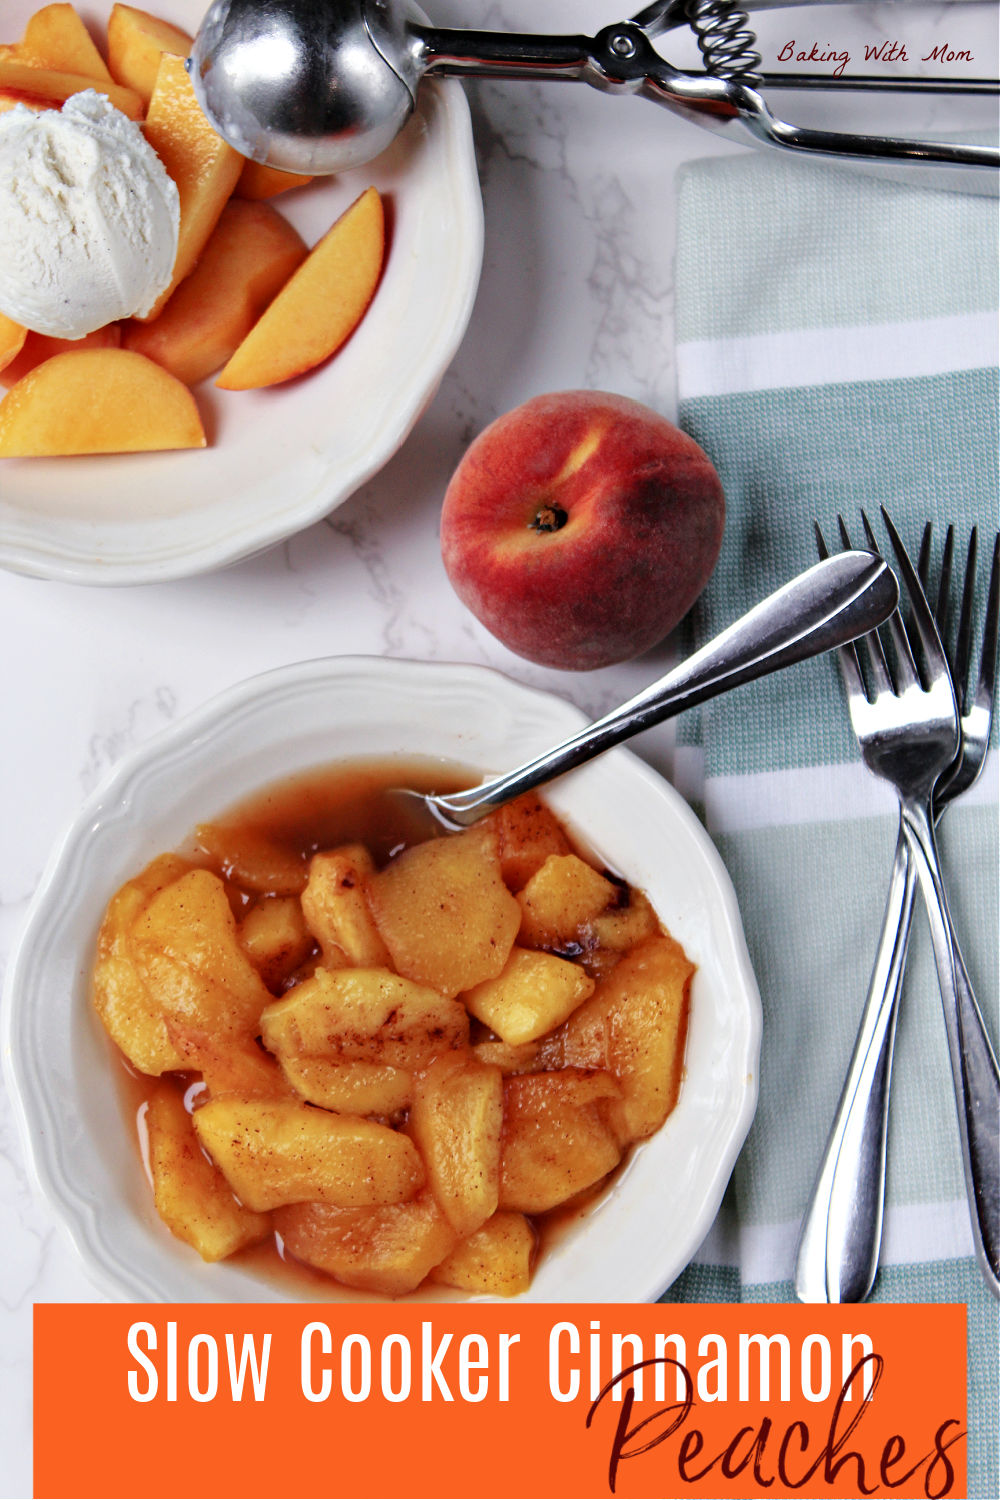 A peach, warm peaches in a bowl and a scoop of vanilla ice cream.